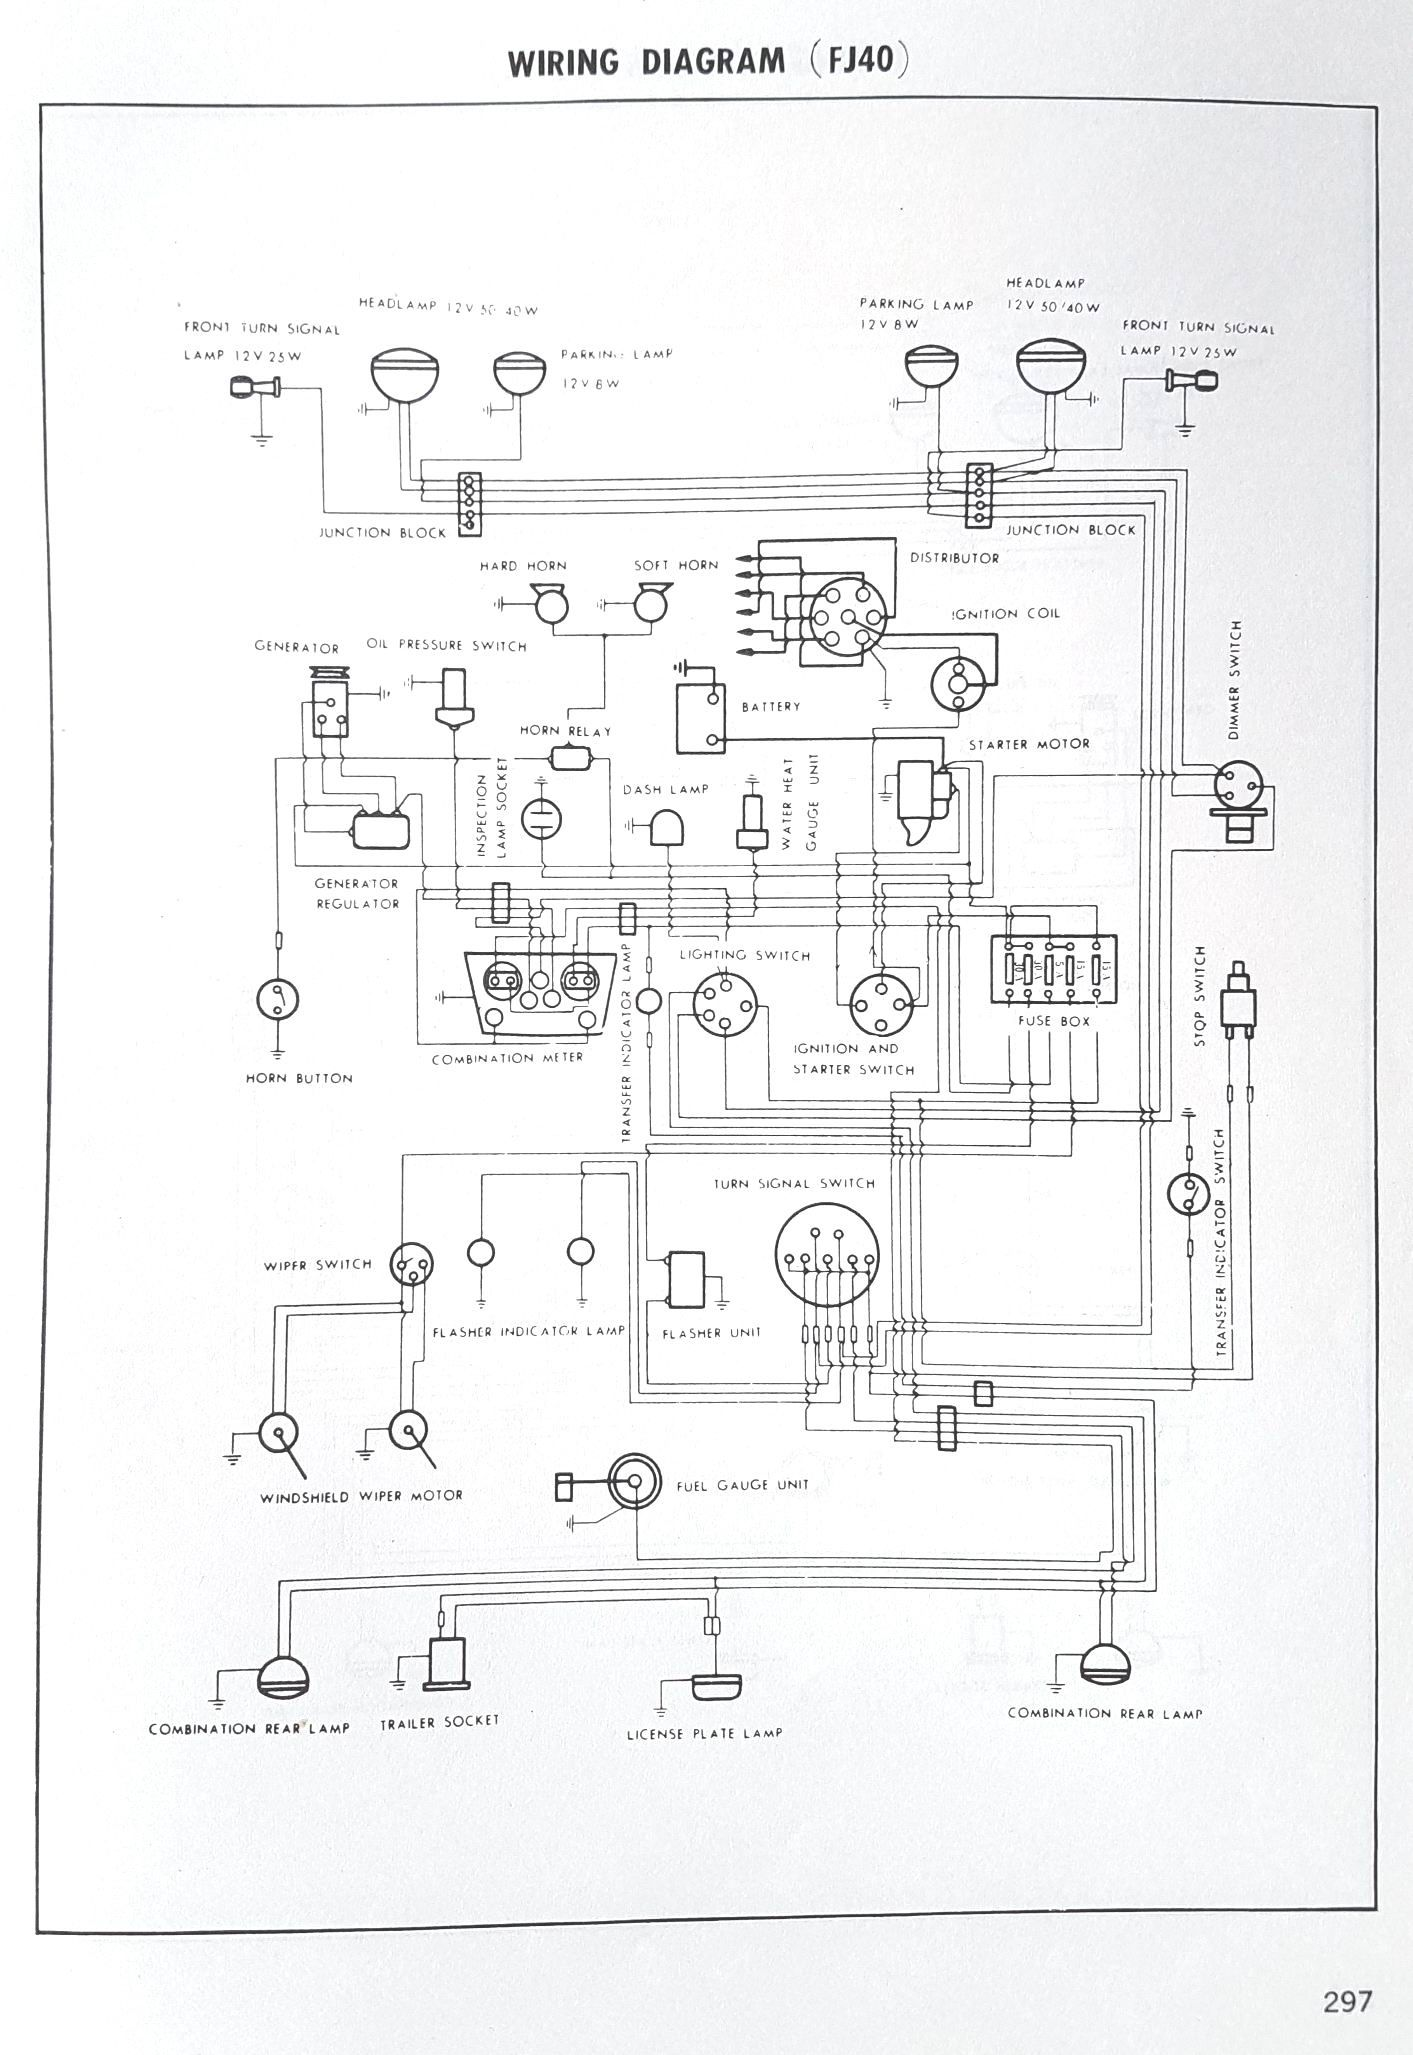 hight resolution of toyota landcruiser service manual wiring diagram fj40